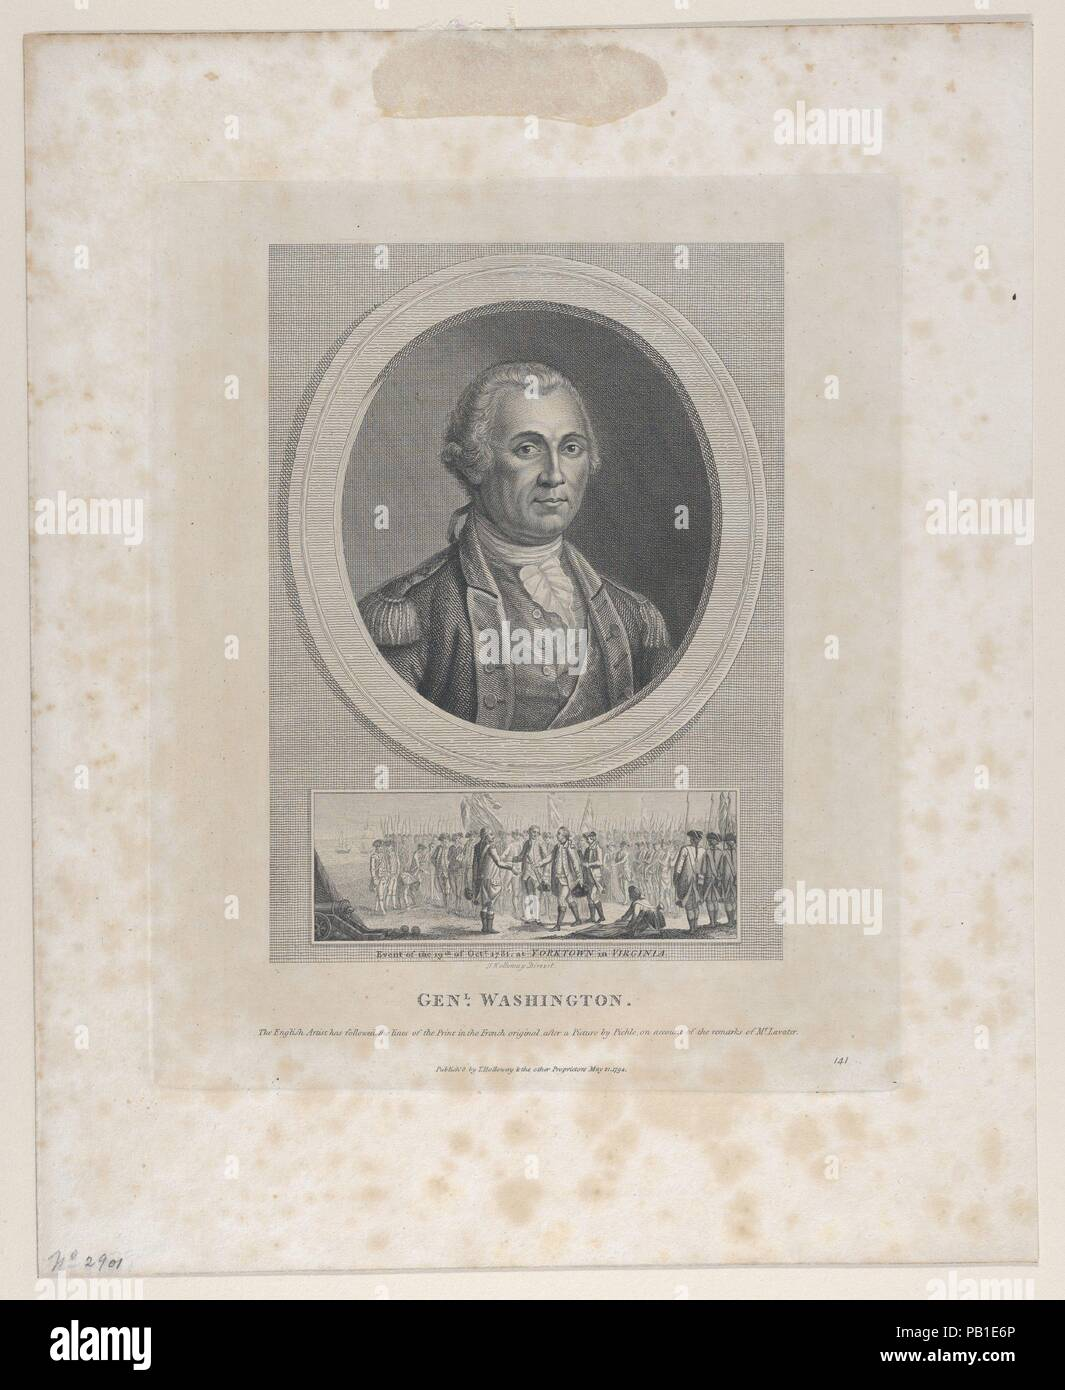 General Washington. Artist: After Charles Willson Peale (American, Chester, Maryland 1741-1827 Philadelphia, Pennsylvania). Dimensions: Plate: 9 5/8 × 8 in. (24.4 × 20.3 cm)  Sheet: 8 15/16 × 5 1/2 in. (22.7 × 14 cm). Publisher: Thomas Holloway (British, London 1748-1827 Coltishall, Norfolk). Sitter: George Washington (American, 1732-1799). Date: May 21, 1794. Museum: Metropolitan Museum of Art, New York, USA. Stock Photo